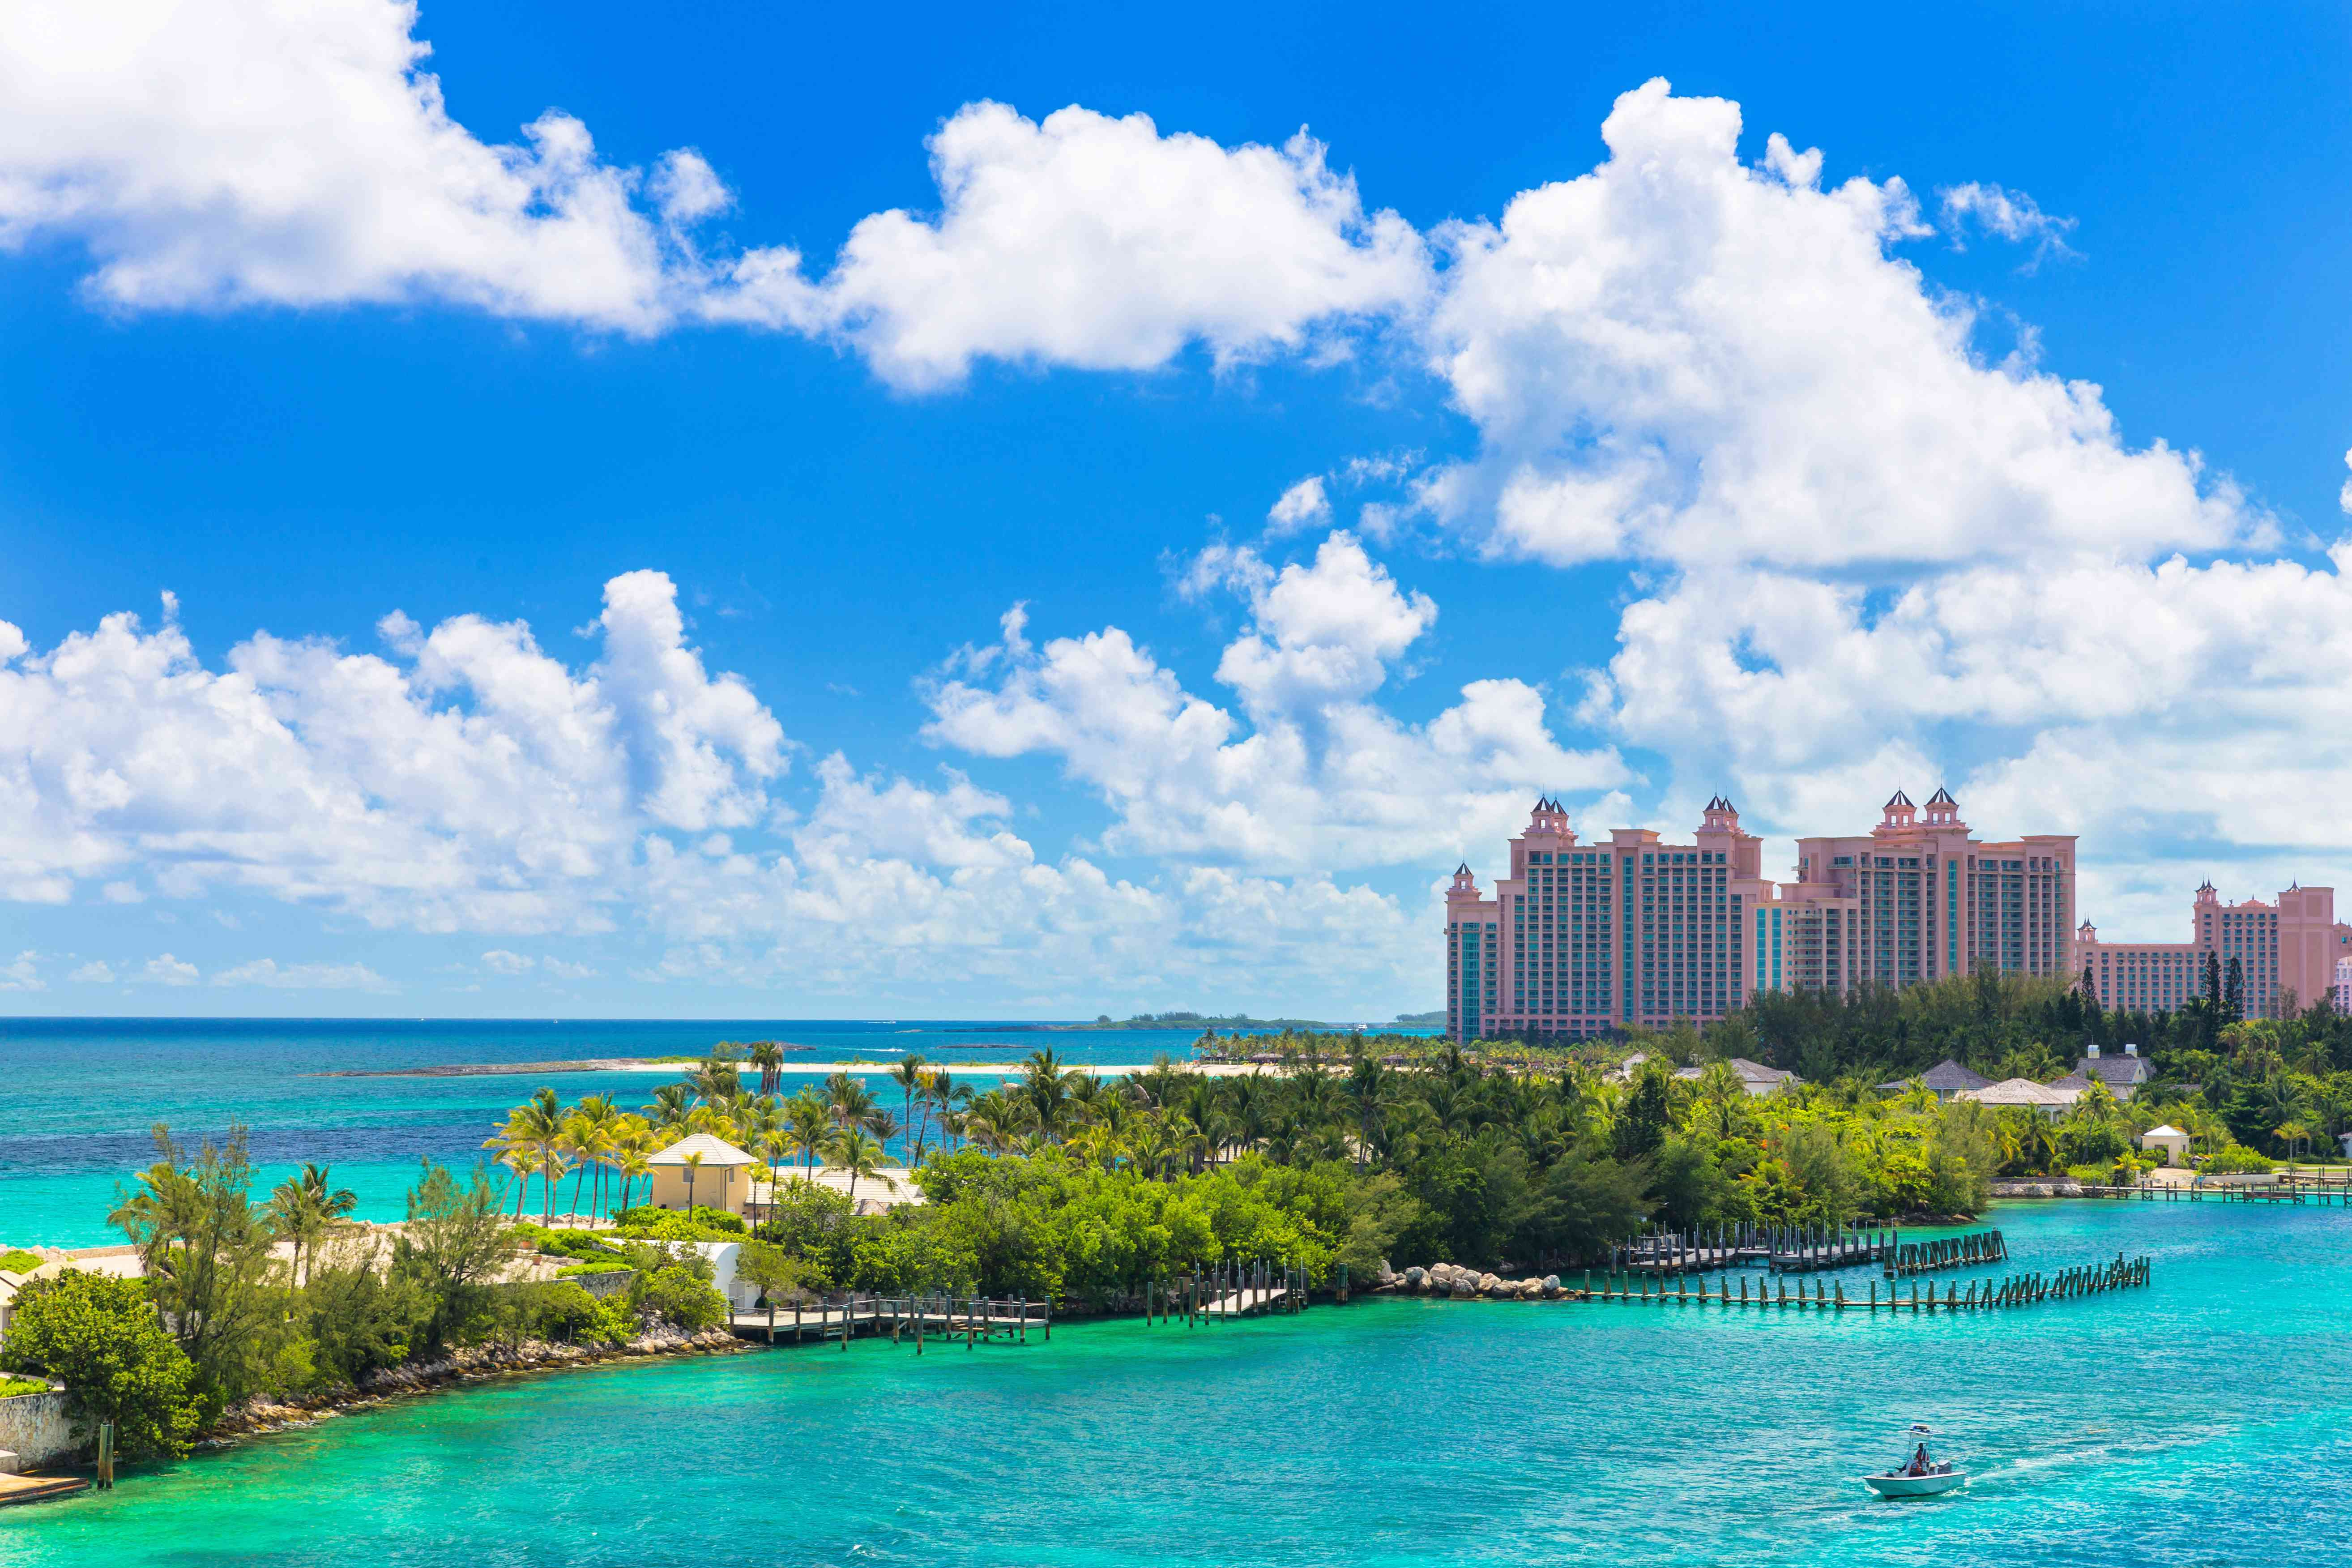 How To Plan A Day Trip To Atlantis Paradise Island In The Bahamas